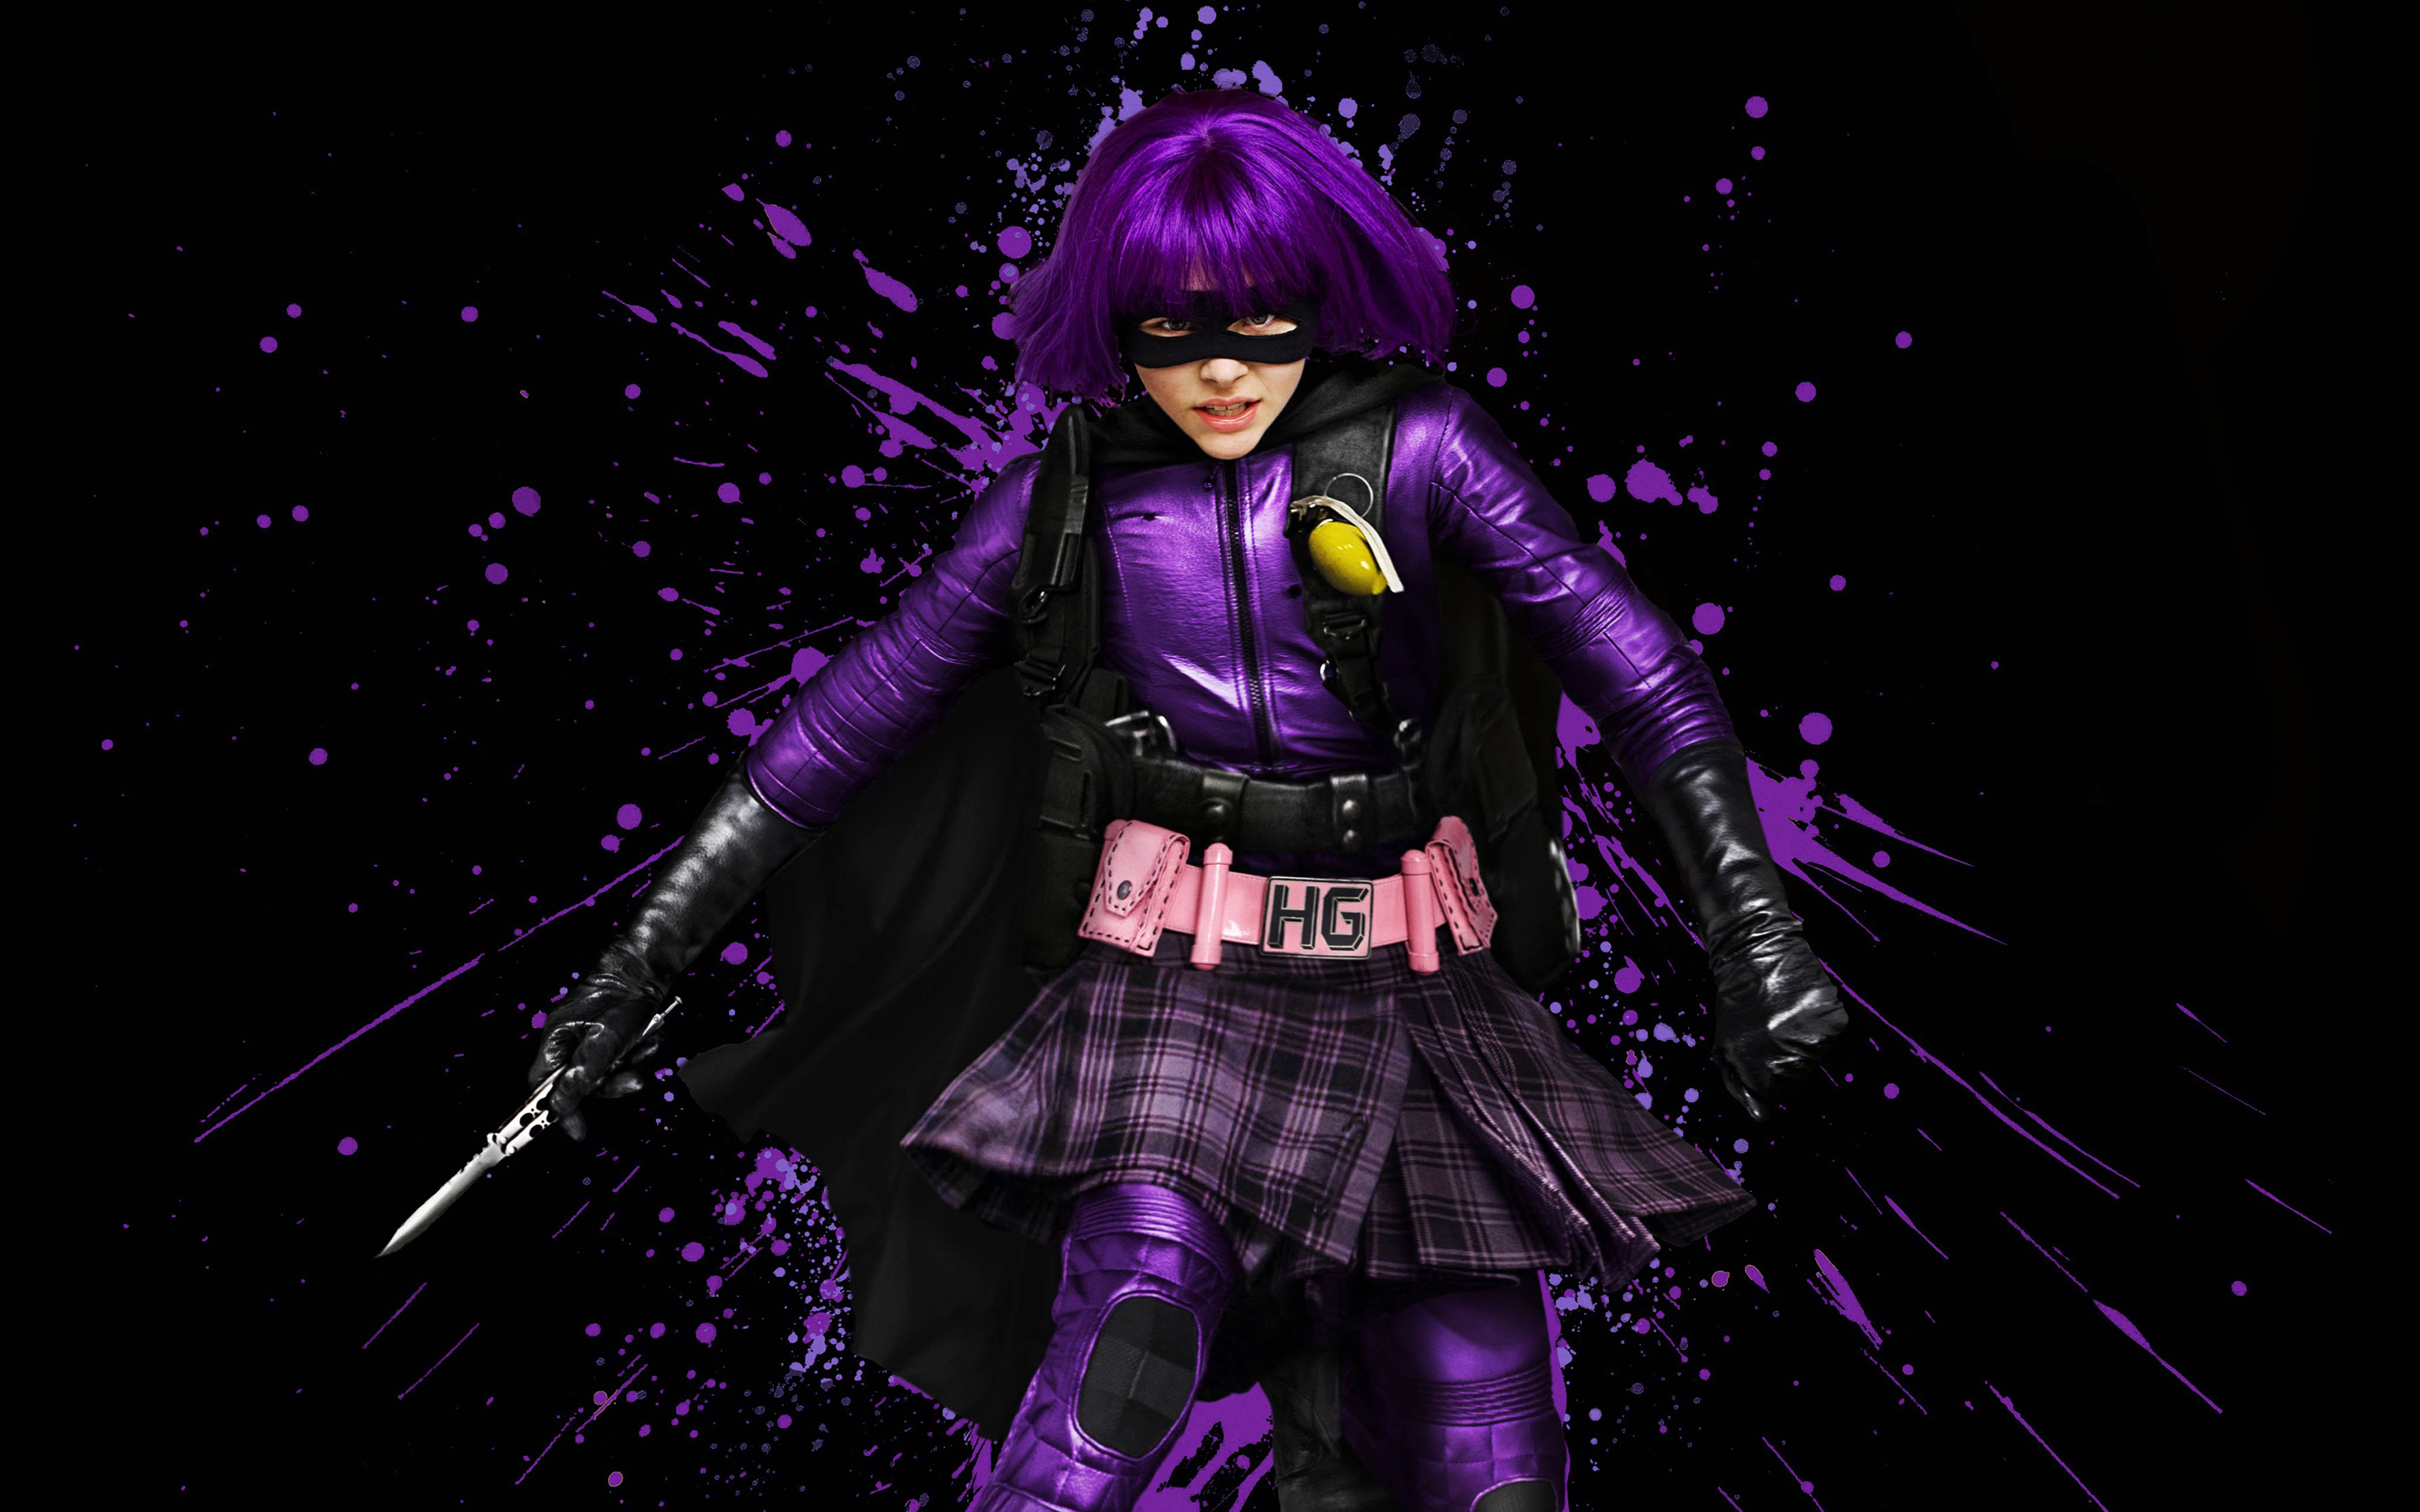 Hit_Girl-_Wallpapers7